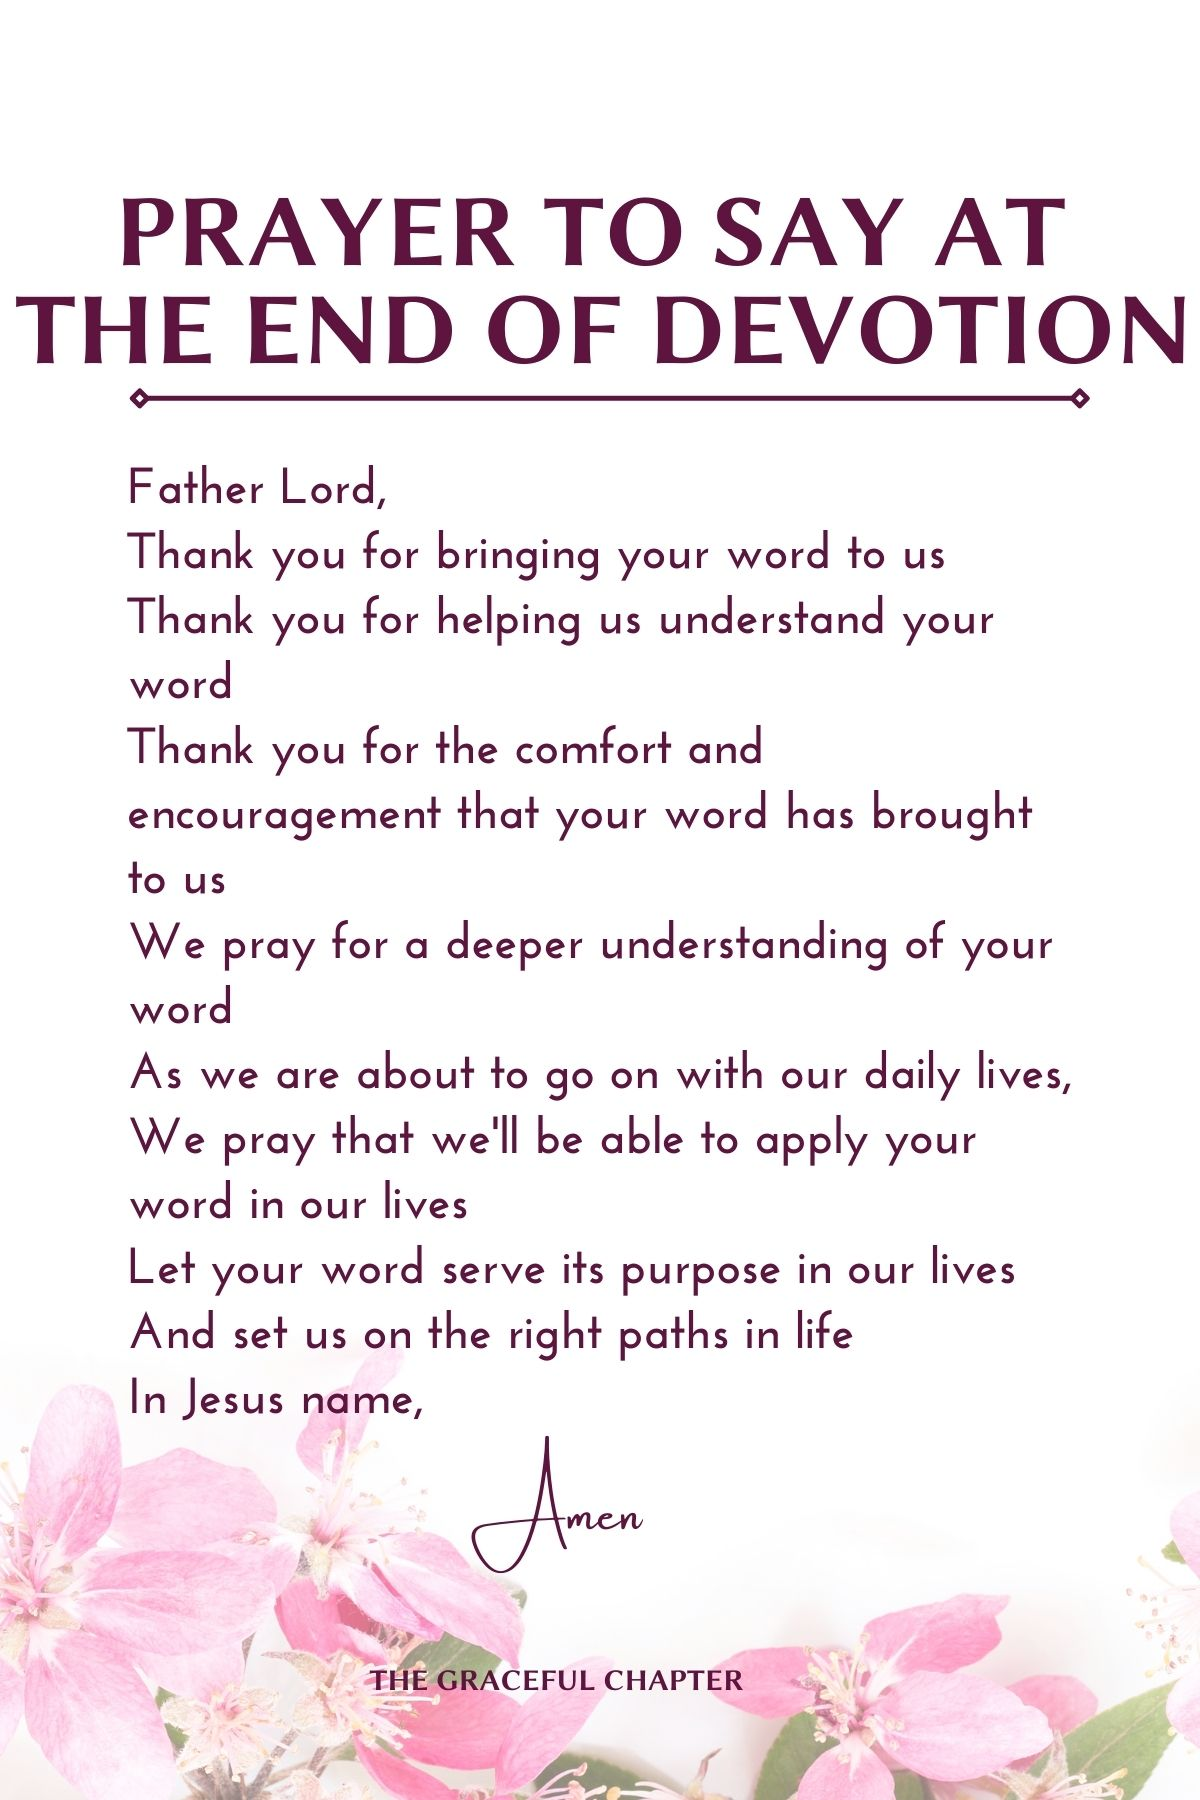 prayer to say at the end of devotion